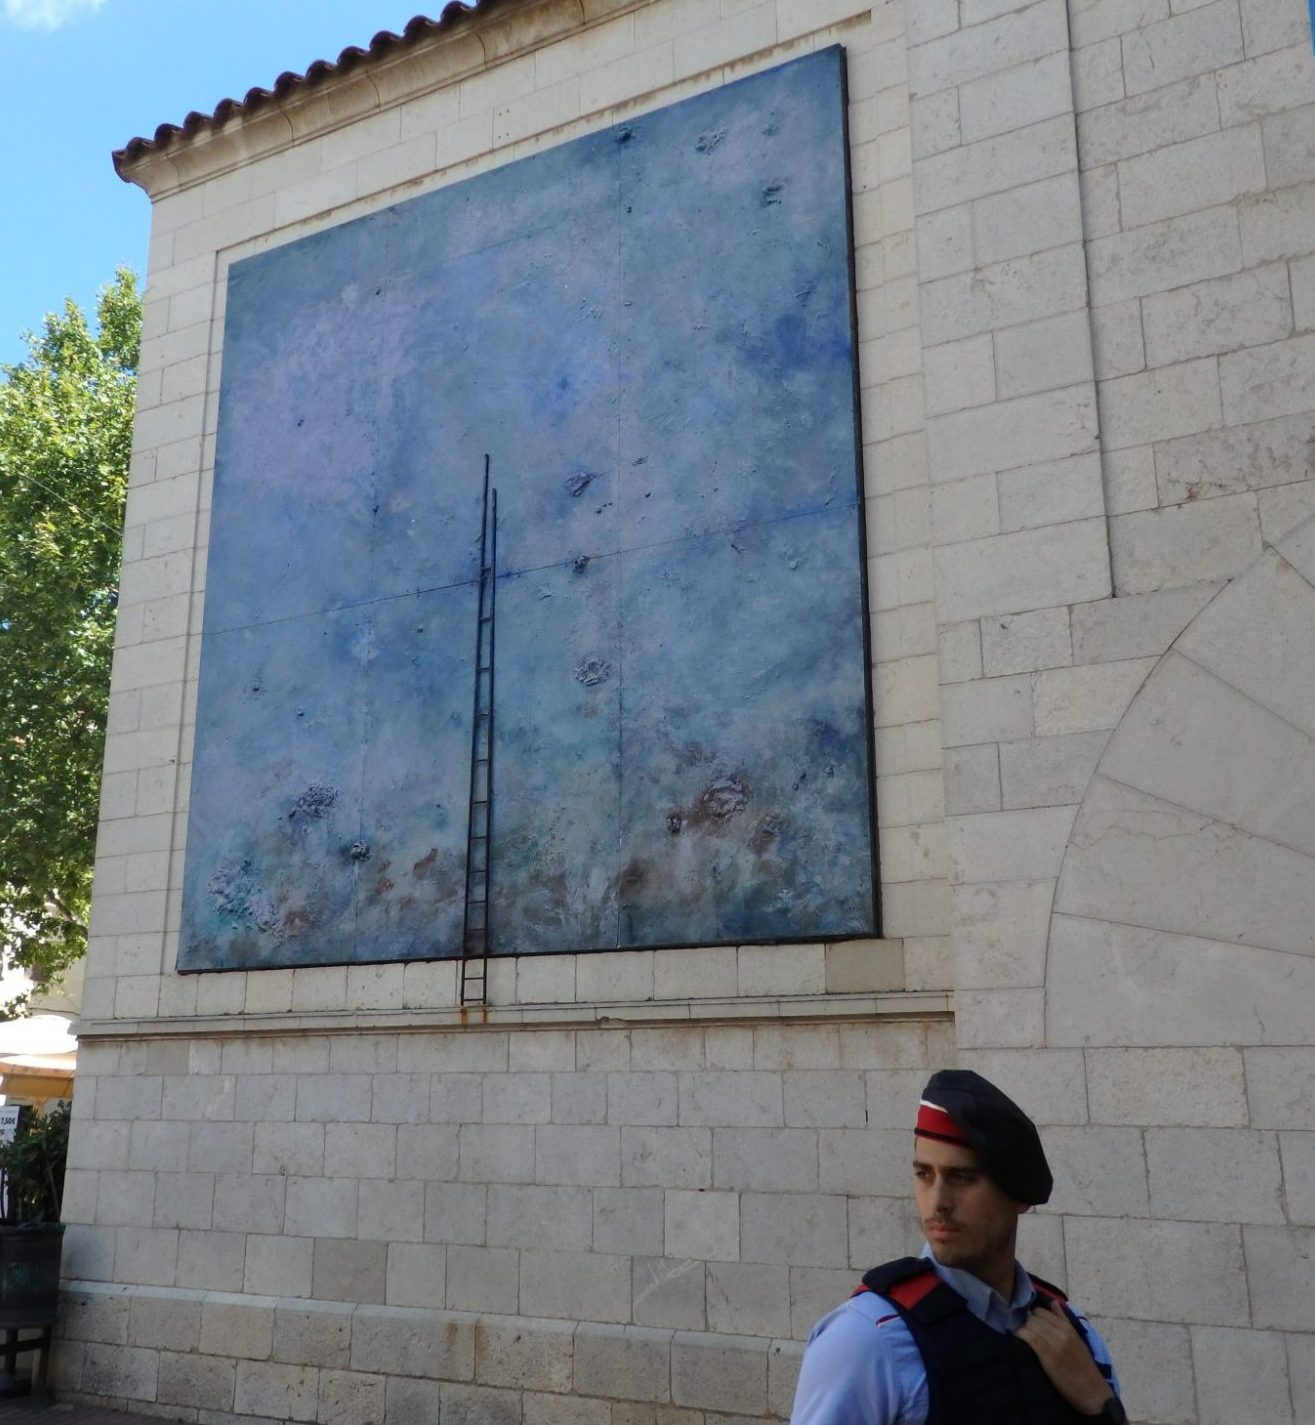 This artwork is just to the left of the tourist information office in Figueres, Spain.